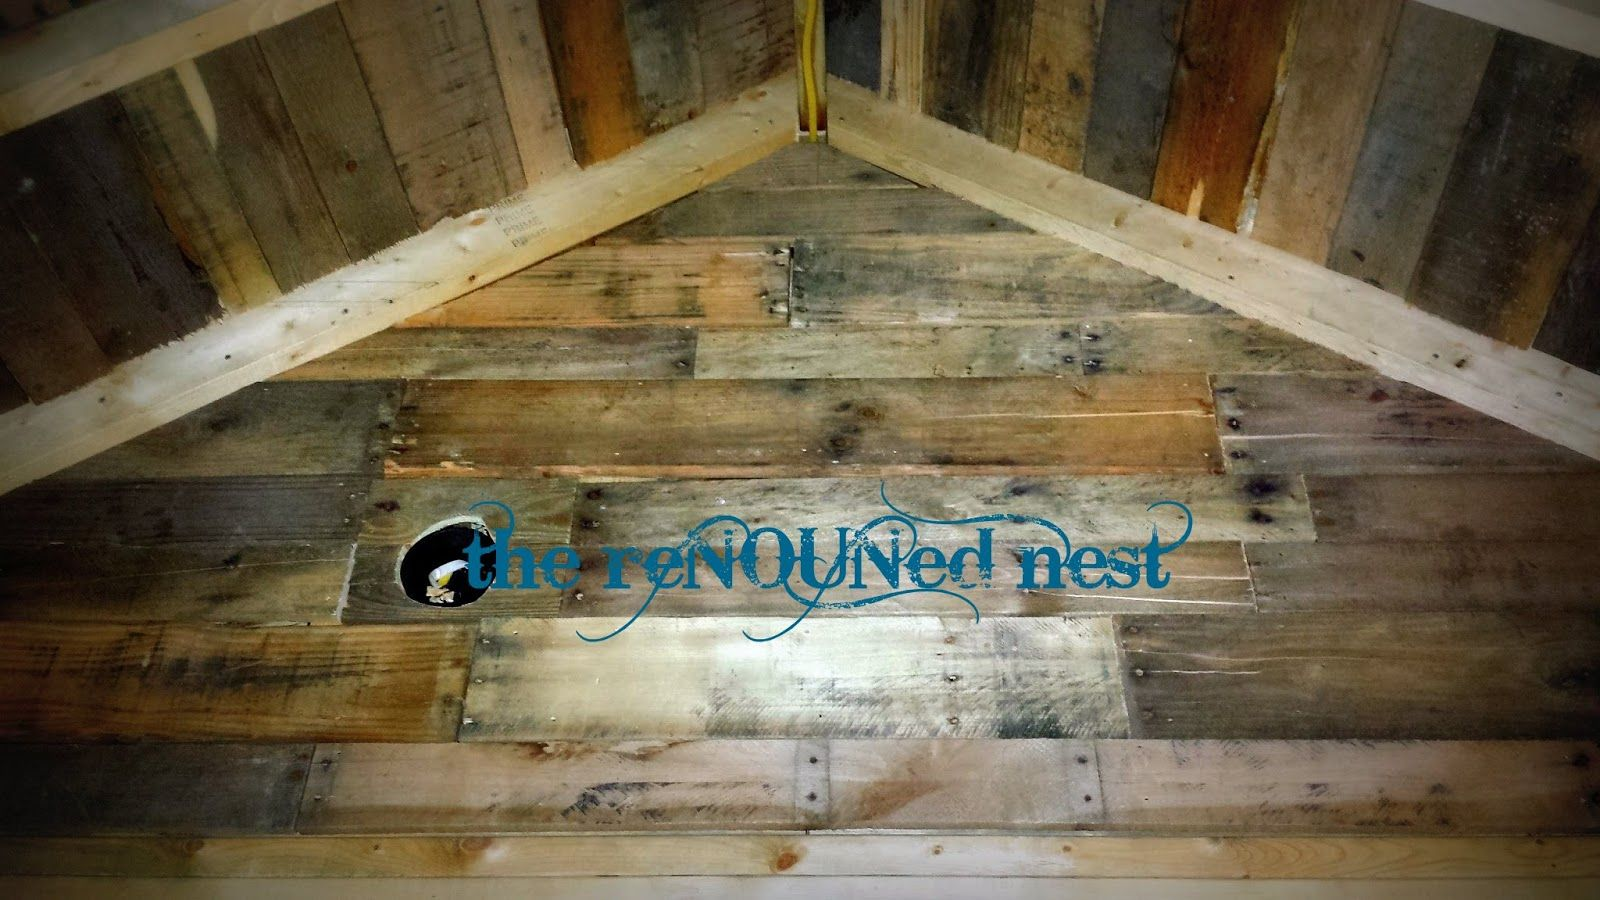 The renouned nest: playhouse progress: pallet board ceiling ...